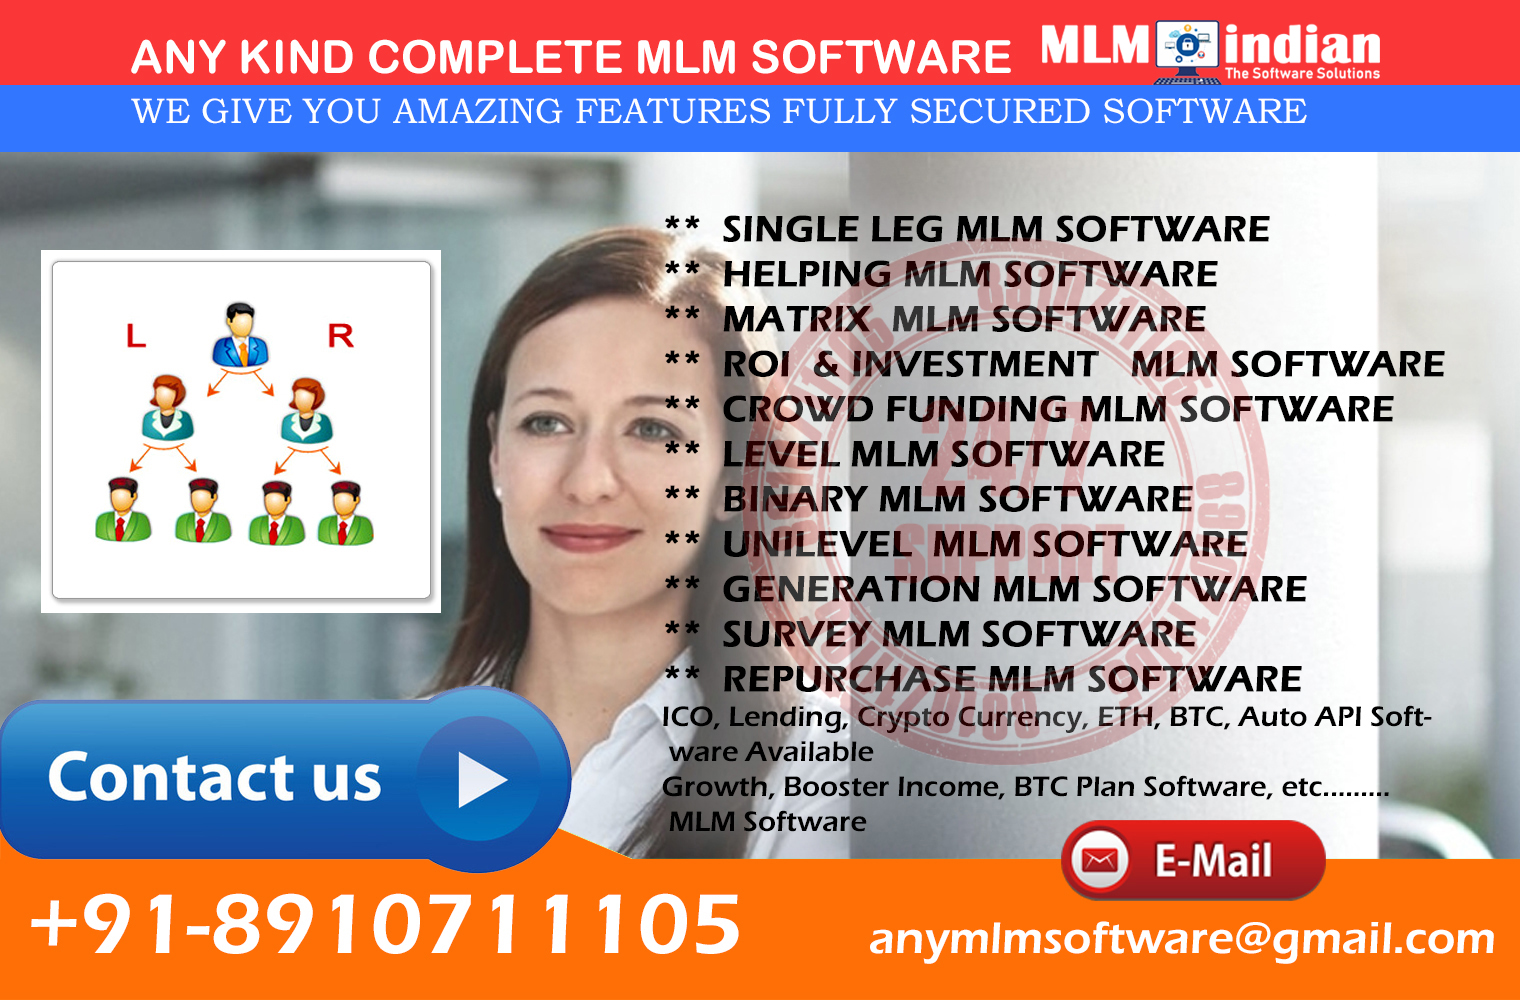 All Type Of MLM Software ROI INVESTMENT  BTC, ETH Auto API Software Available